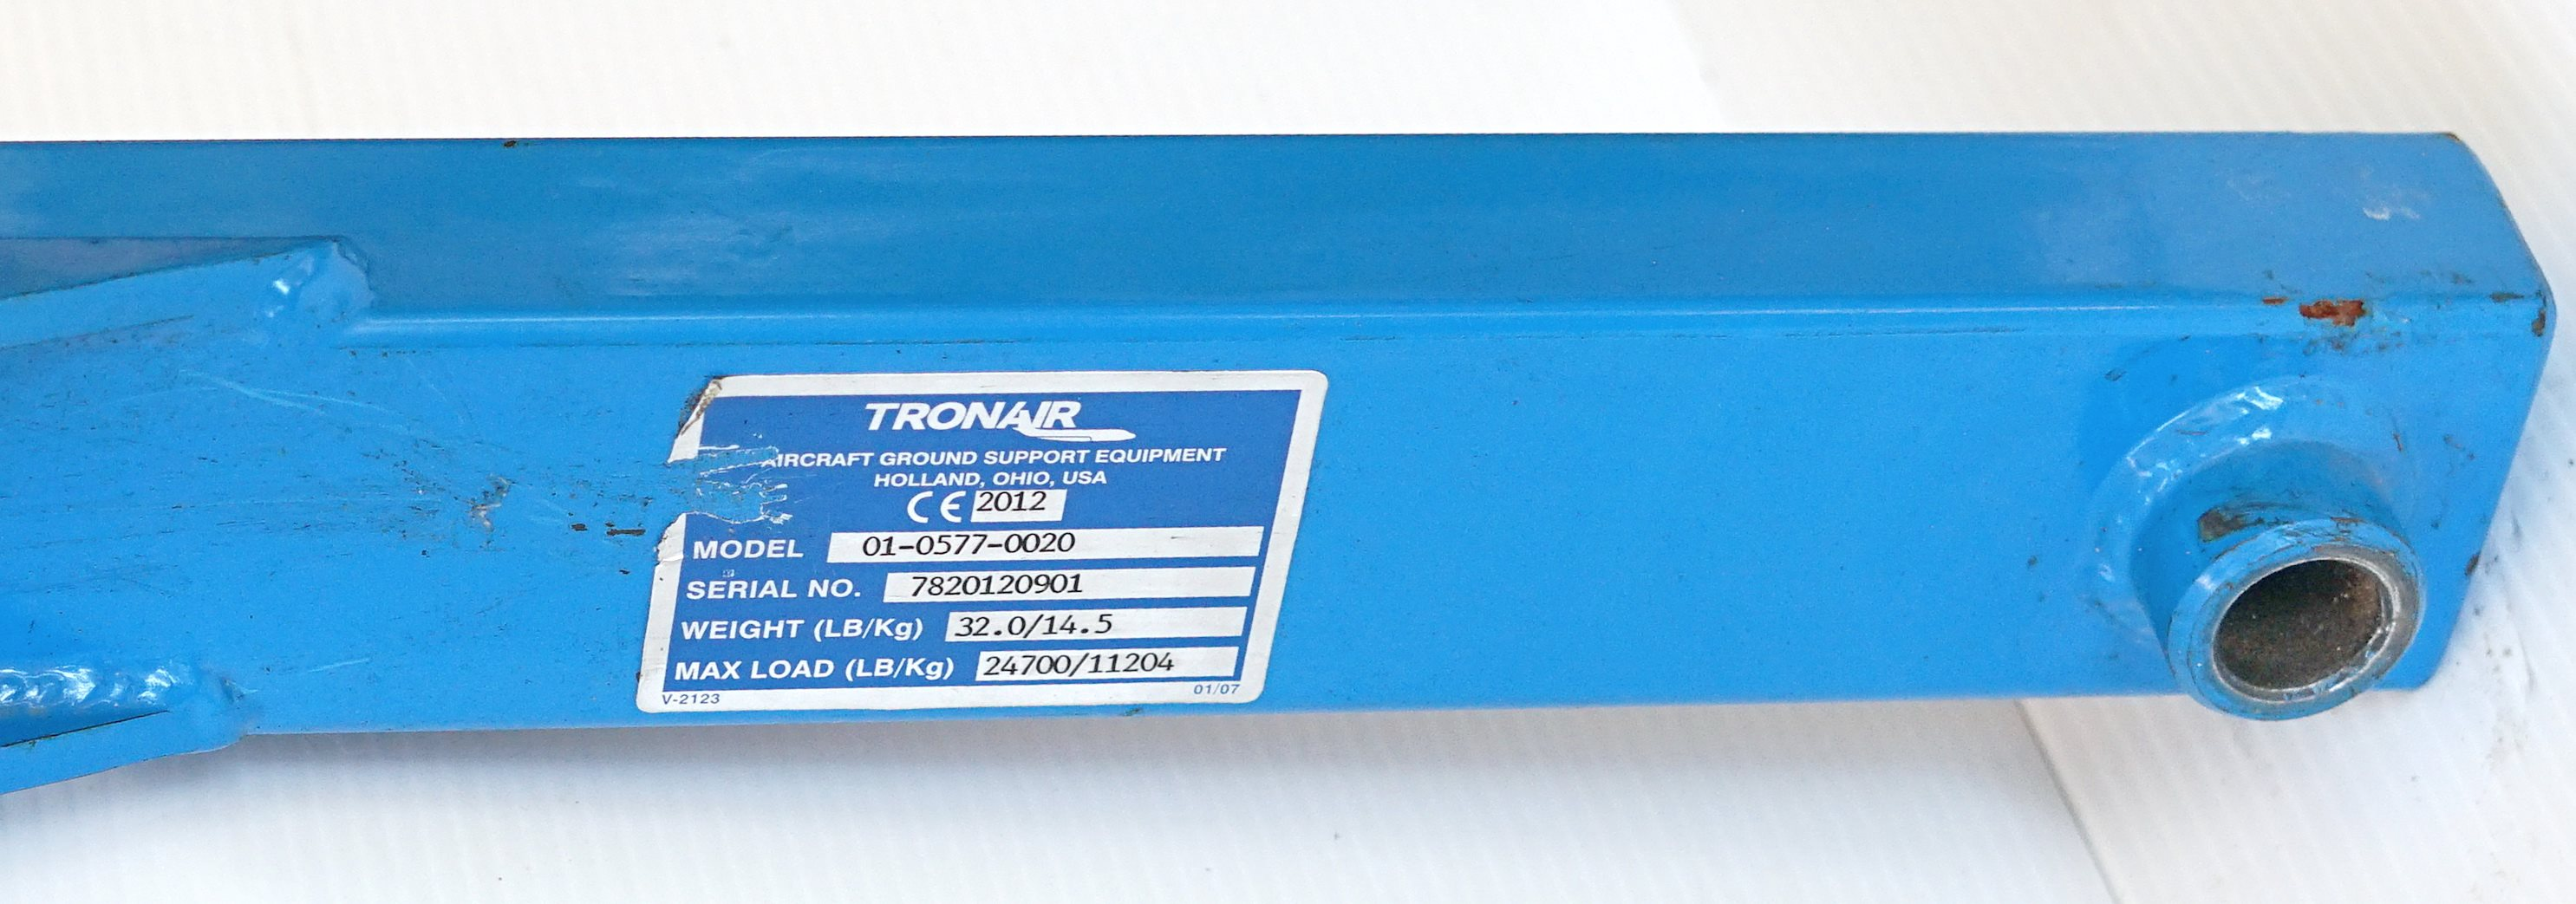 Ground Support Equipment - Tronair 01-0577-0020 Attachment for EuroCopter